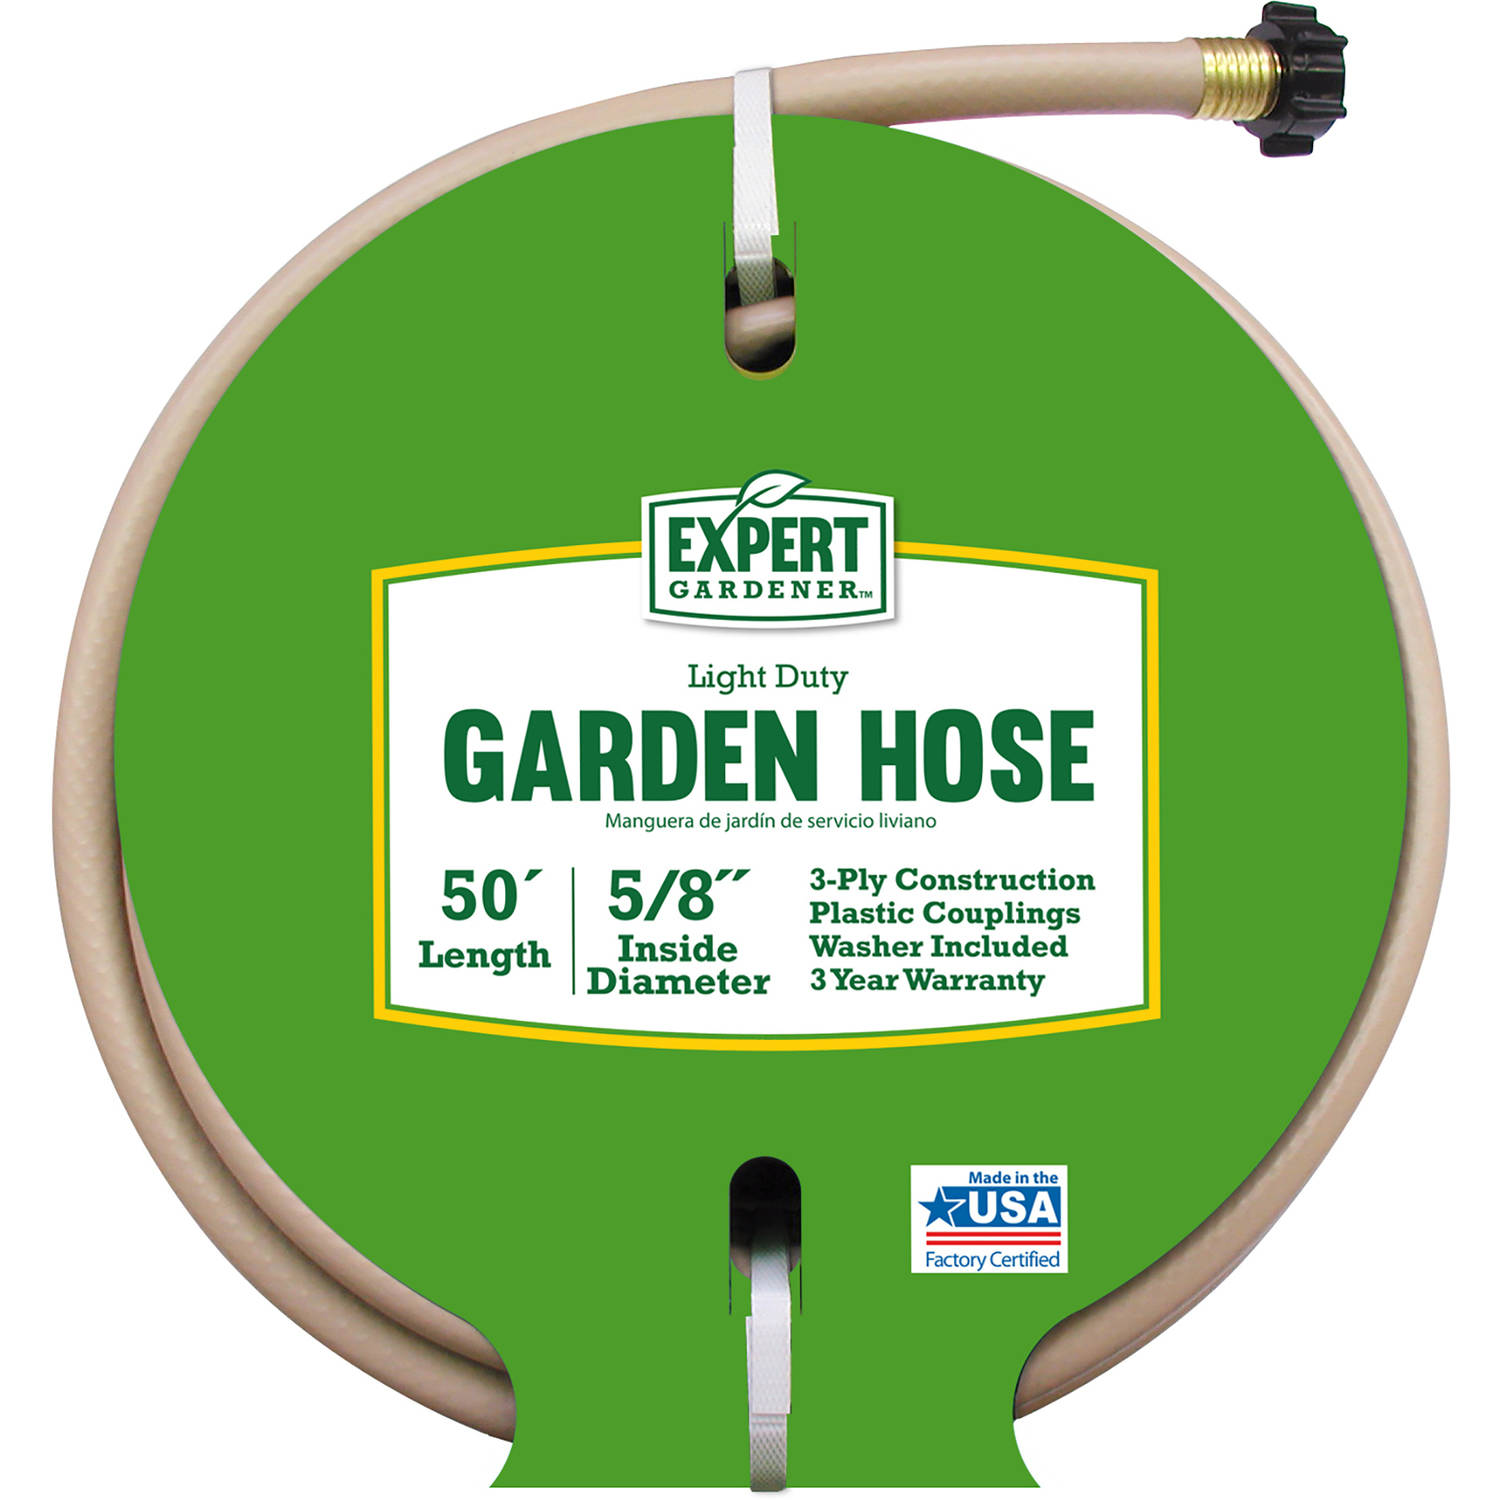 Expert Gardener 50' Light-Duty Garden Hose